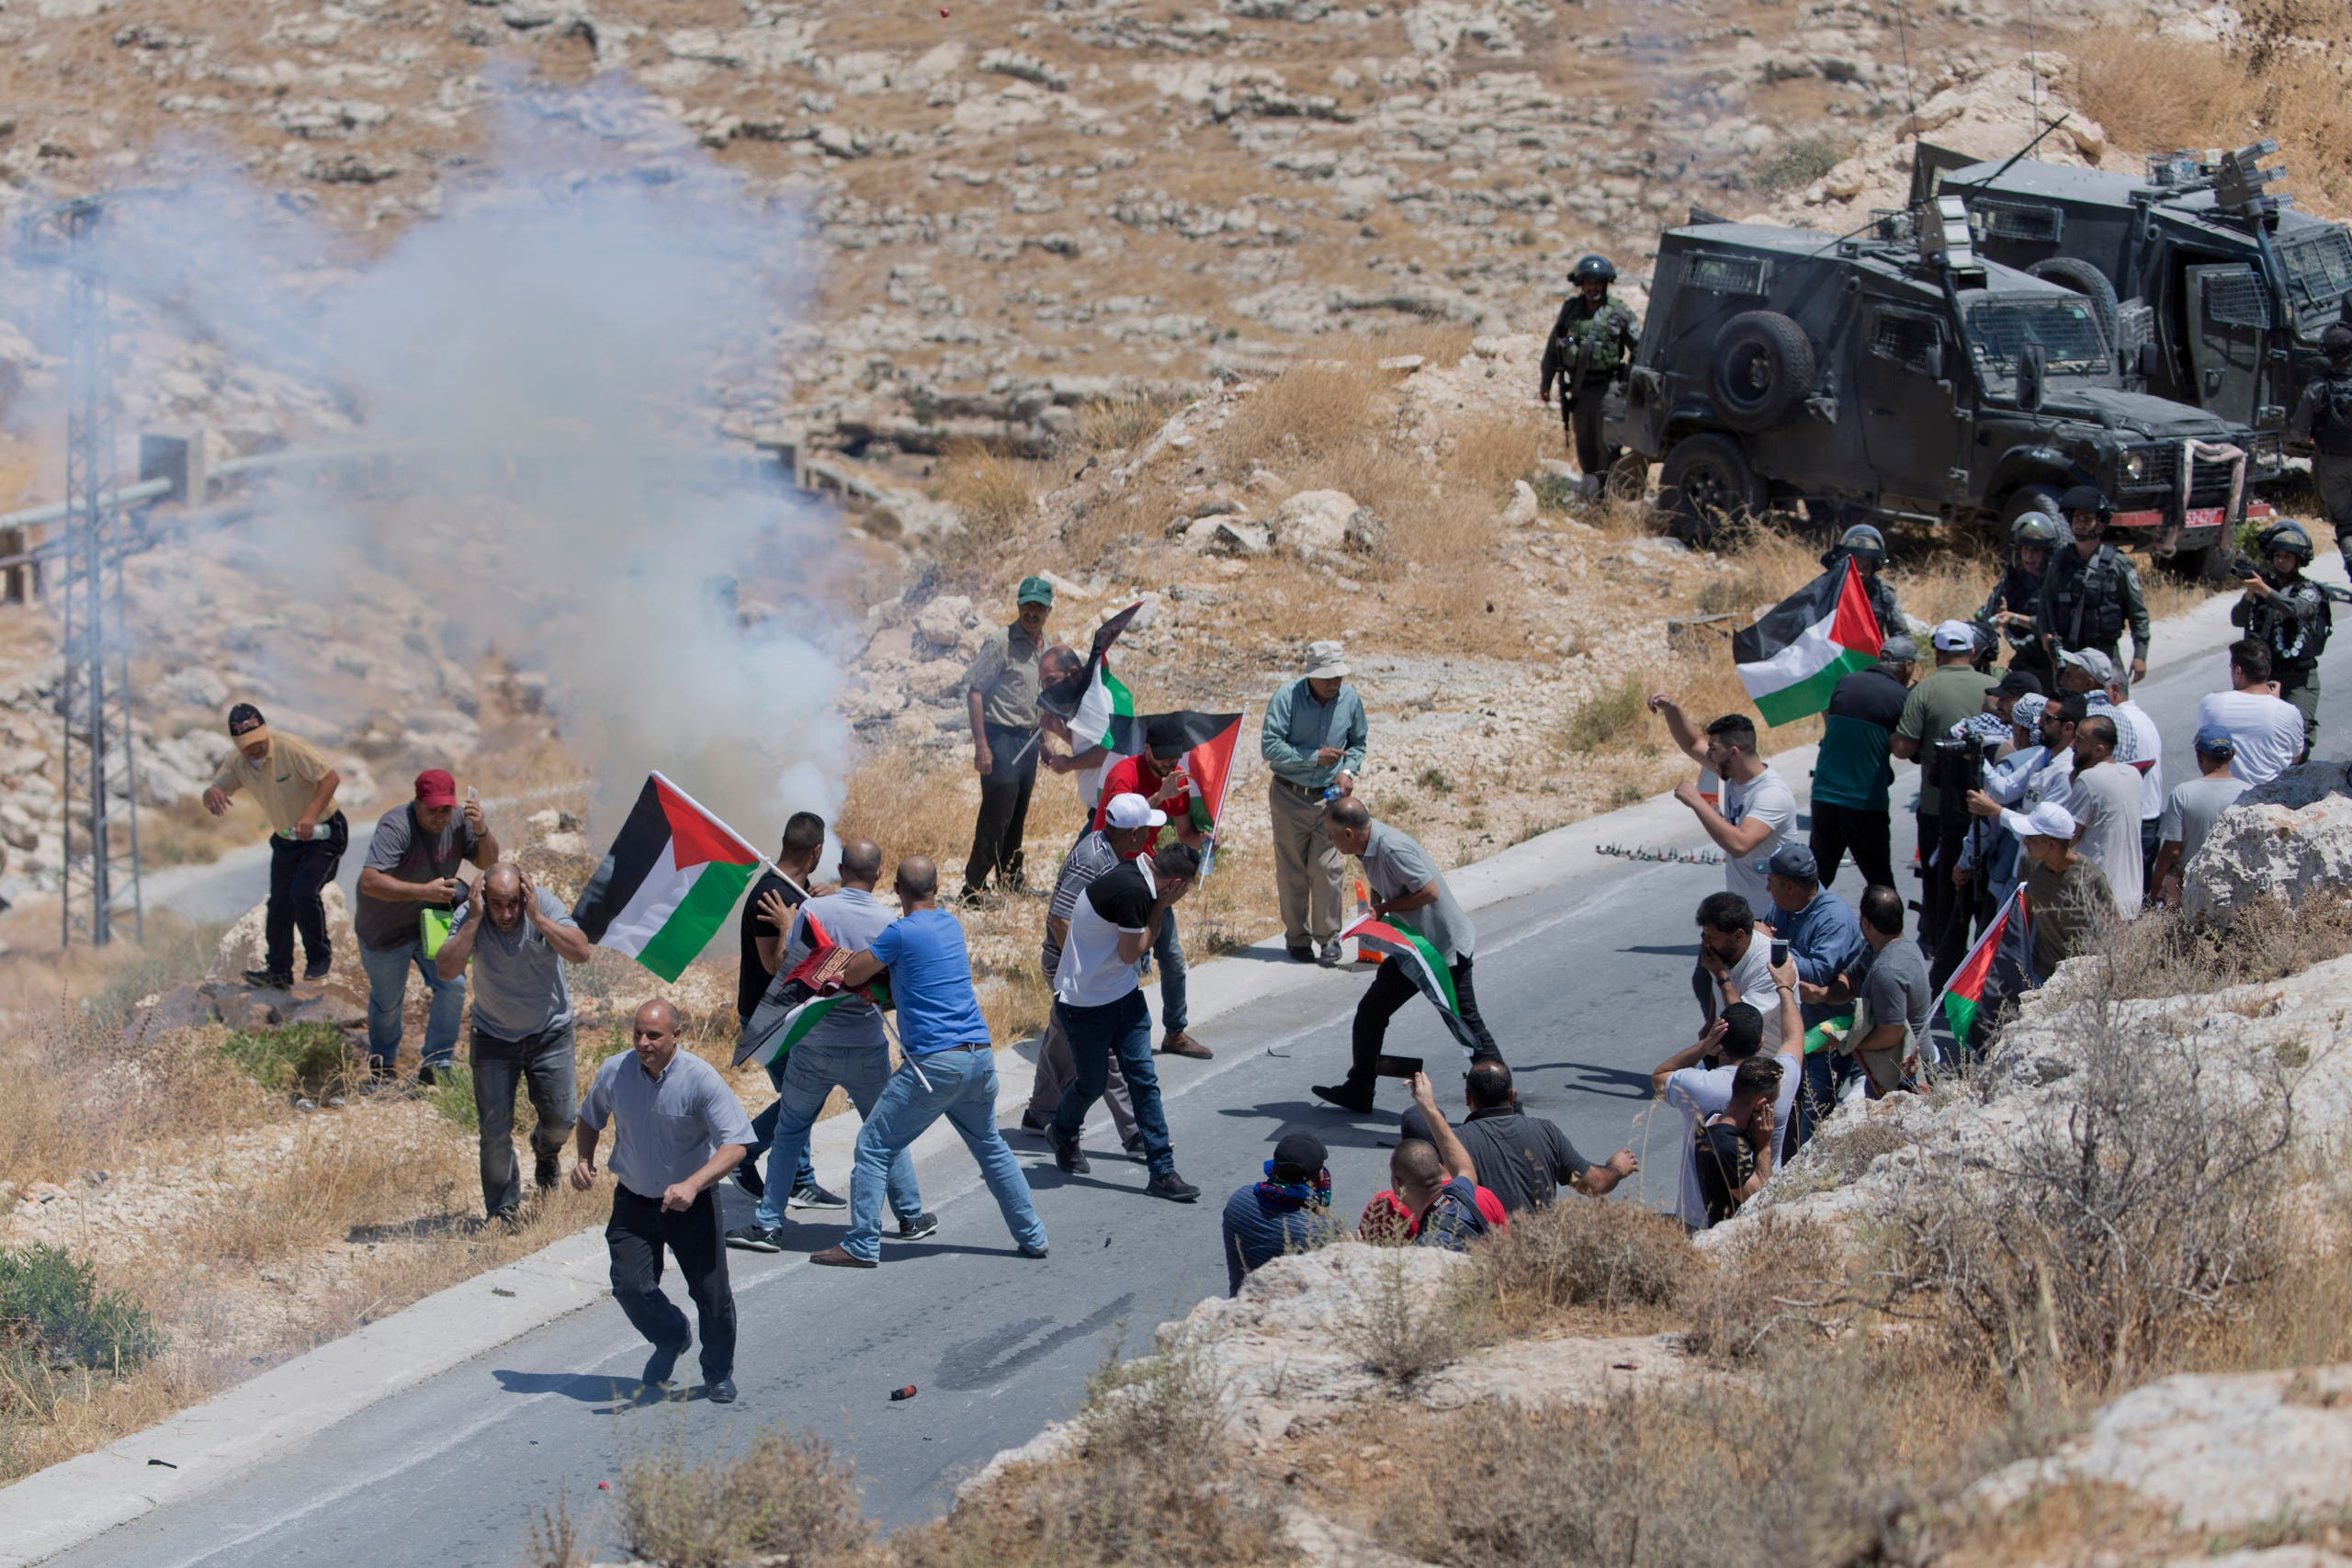 Israeli border police block the road and disperse Palestinian, Israeli and foreign activists during a rally protesting a newly established settlement near the West Bank village of Kufr Malik on Aug. 16. 2019. (AP)